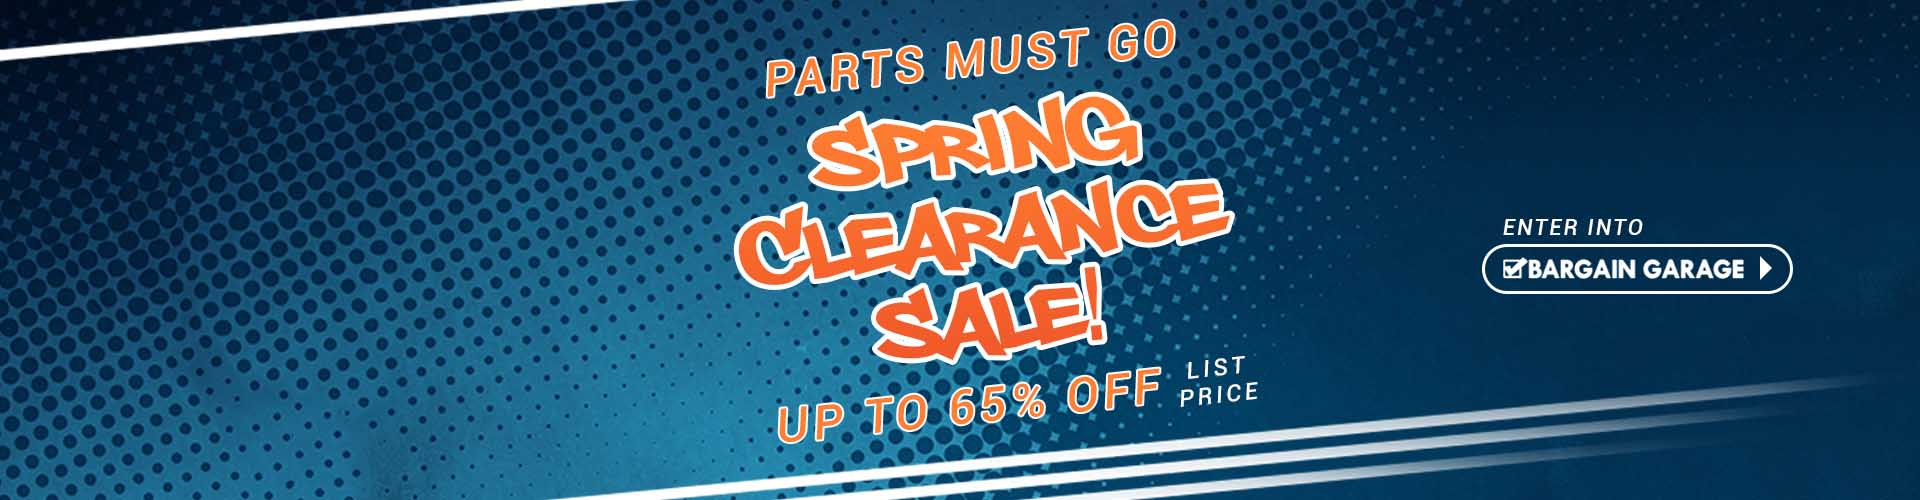 Spring Clearance Sale! - Parts Must Go